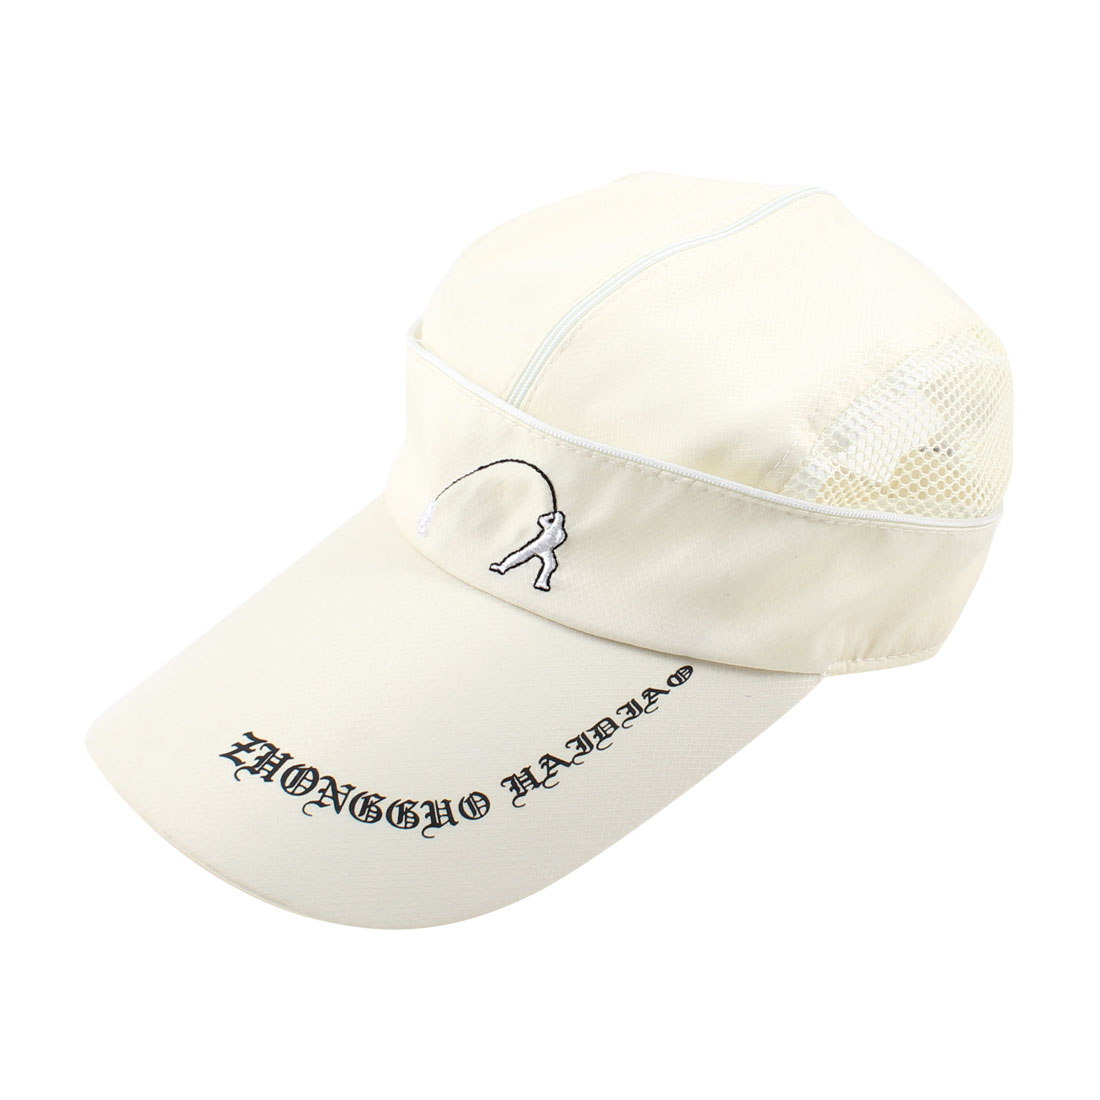 Unisex Fishing Man Printed Outdoor Adjustable 2 Ways Sun Visor Cap Hat Off White